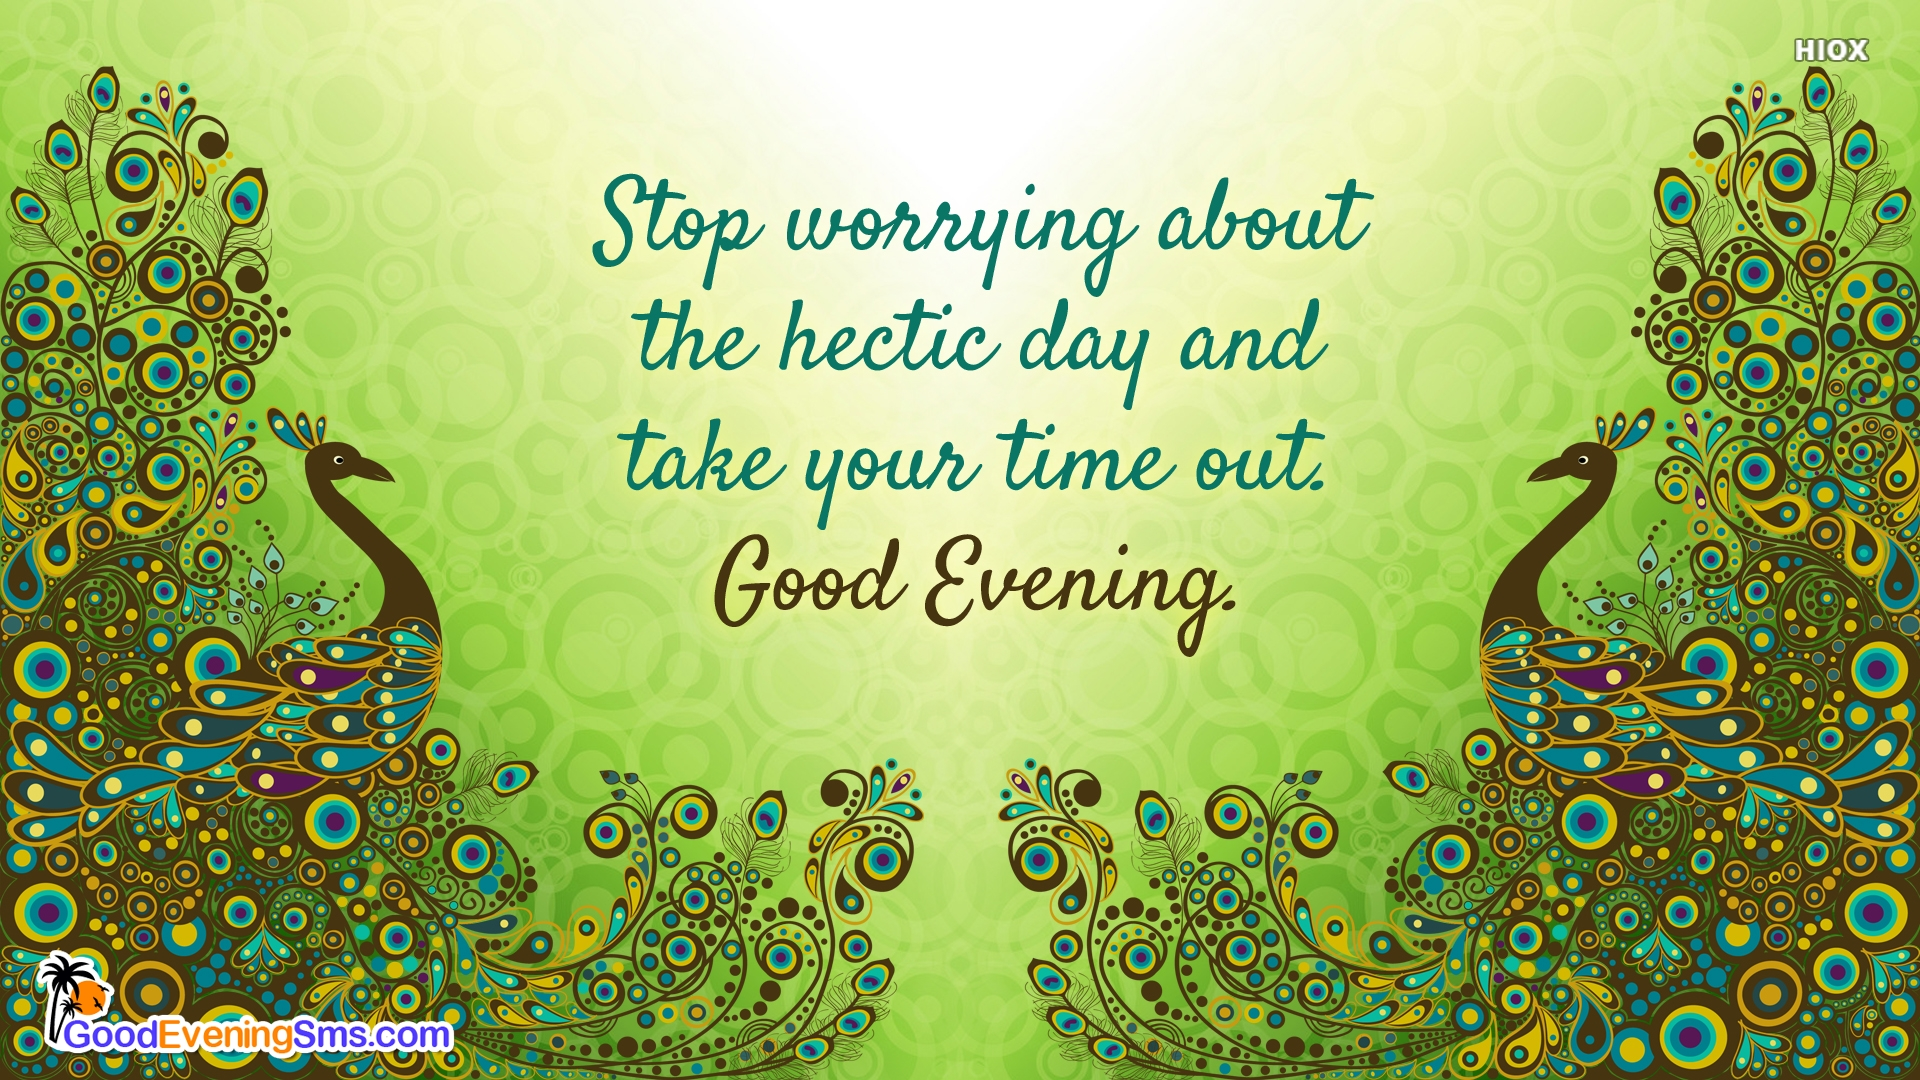 Stop Worrying About The Hectic Day and Take Your Time Out. Good Evening.